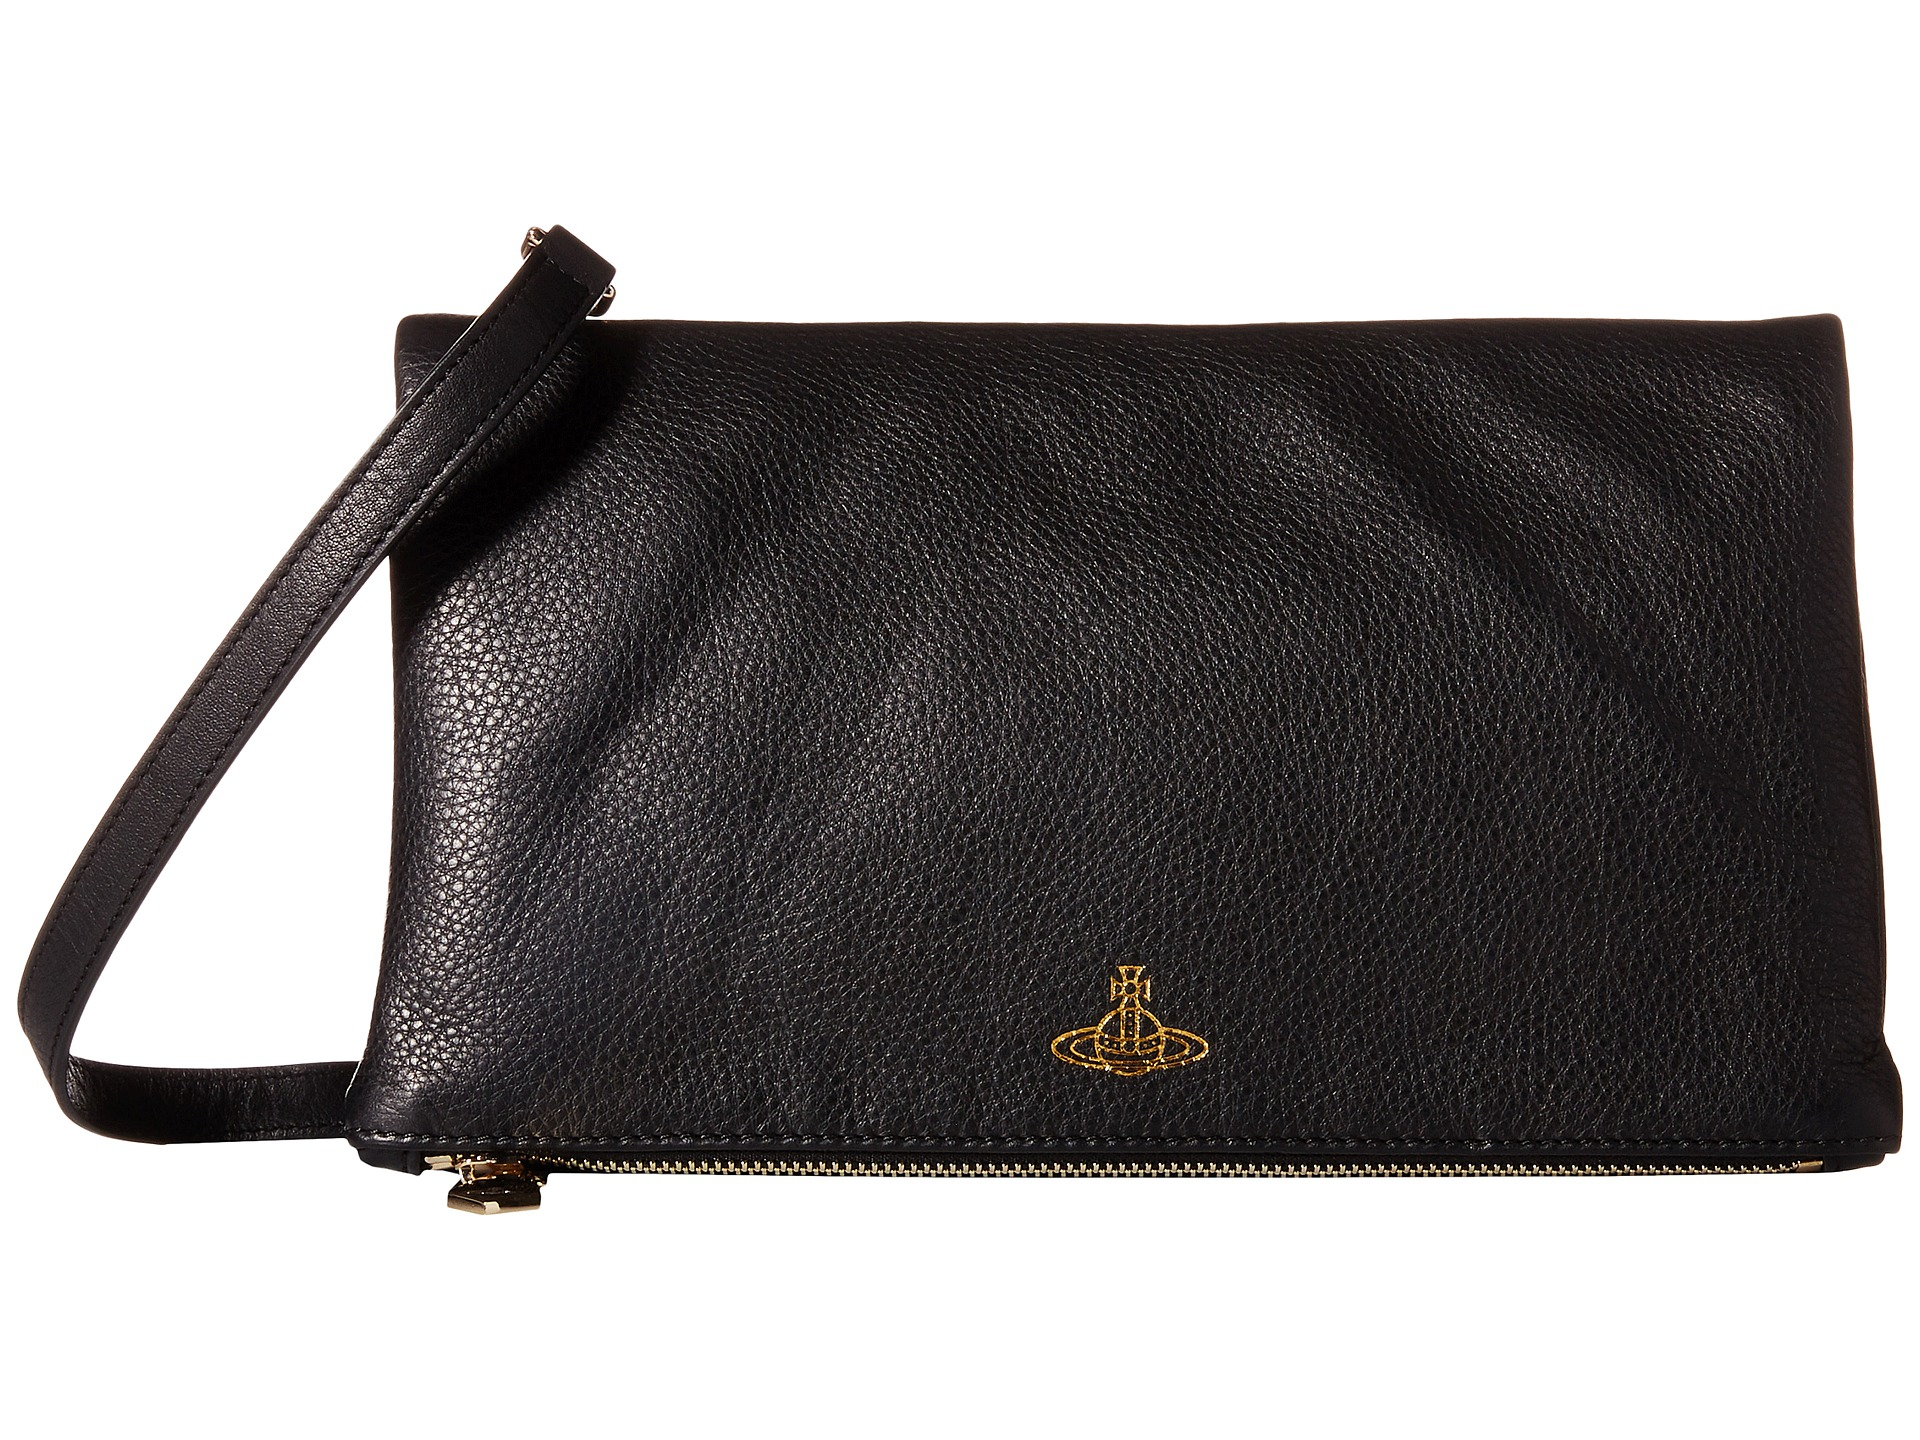 3e84f7a60a6 Vivienne Westwood Spencer Crossbody Clutch in Black - Lyst